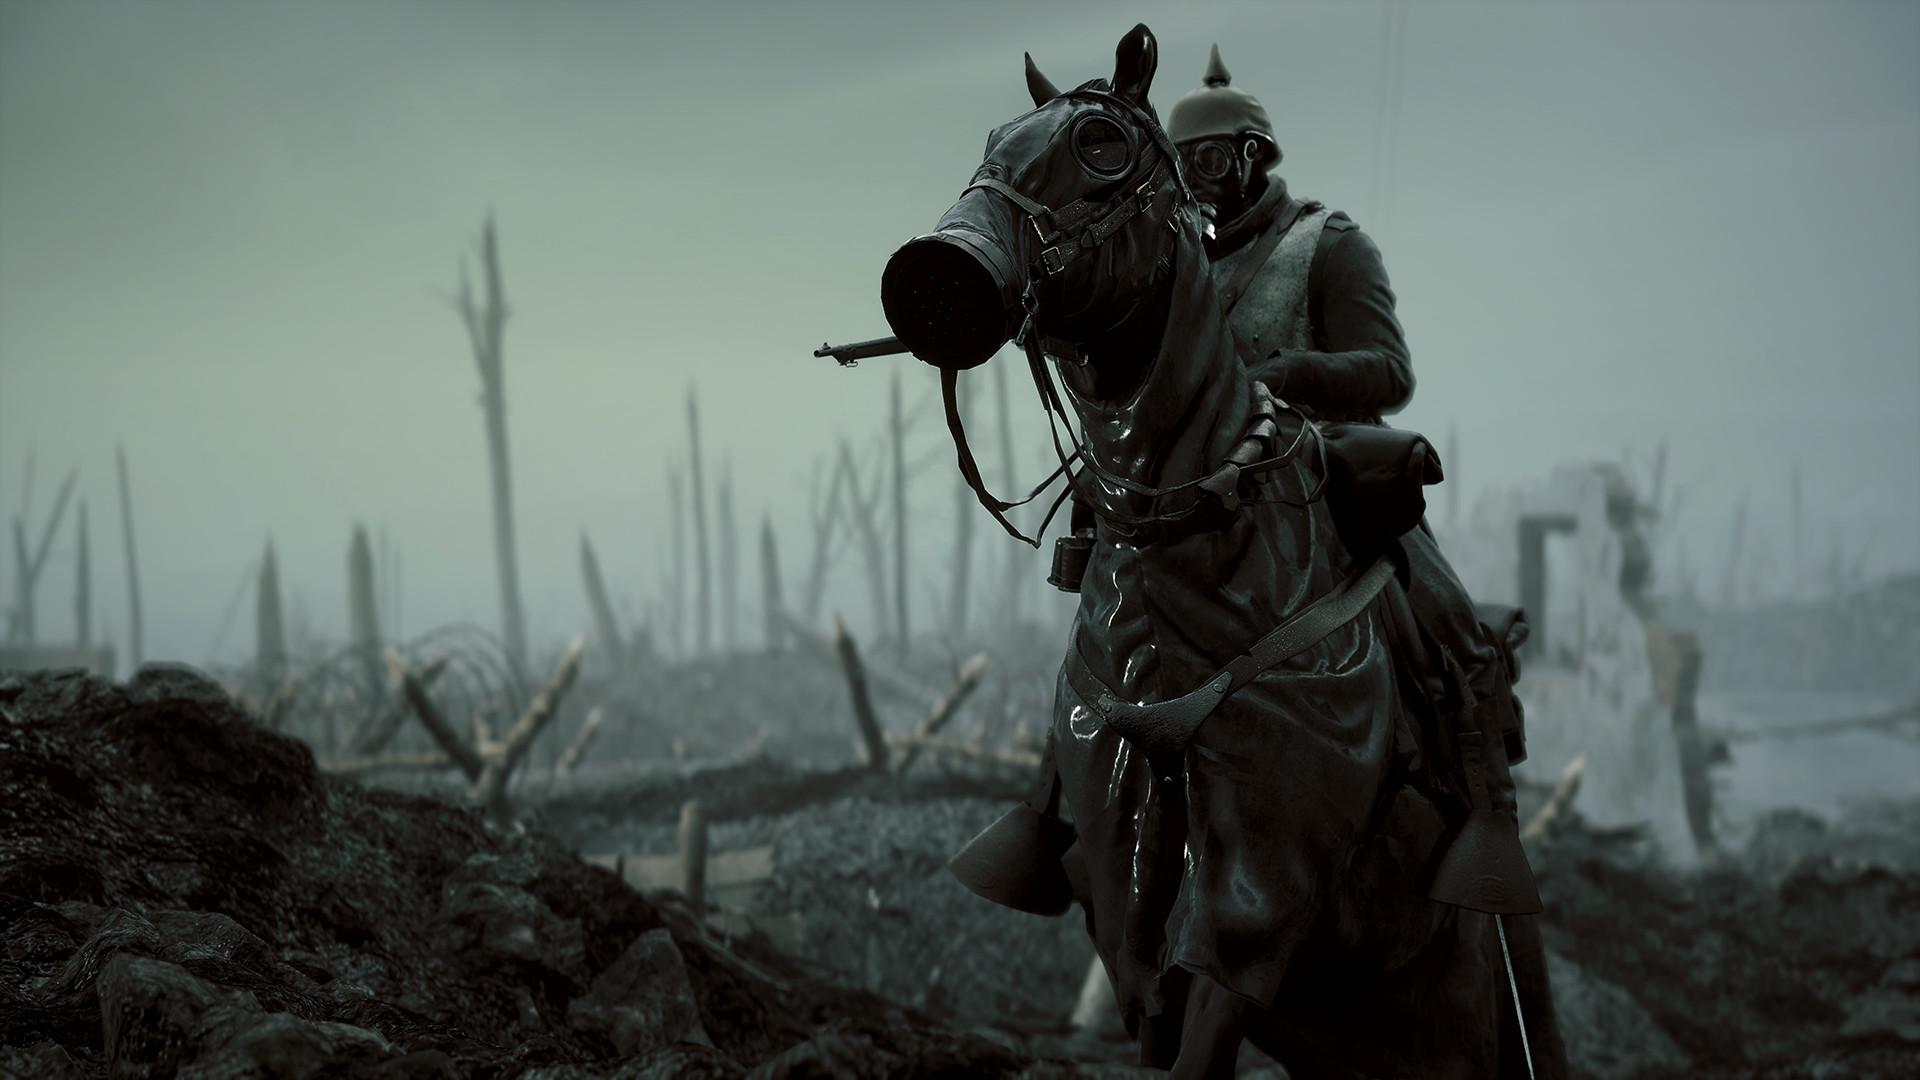 Battlefield 1's harrowing depiction of the horrors of the first World War is accurately portrayed in its environmental design